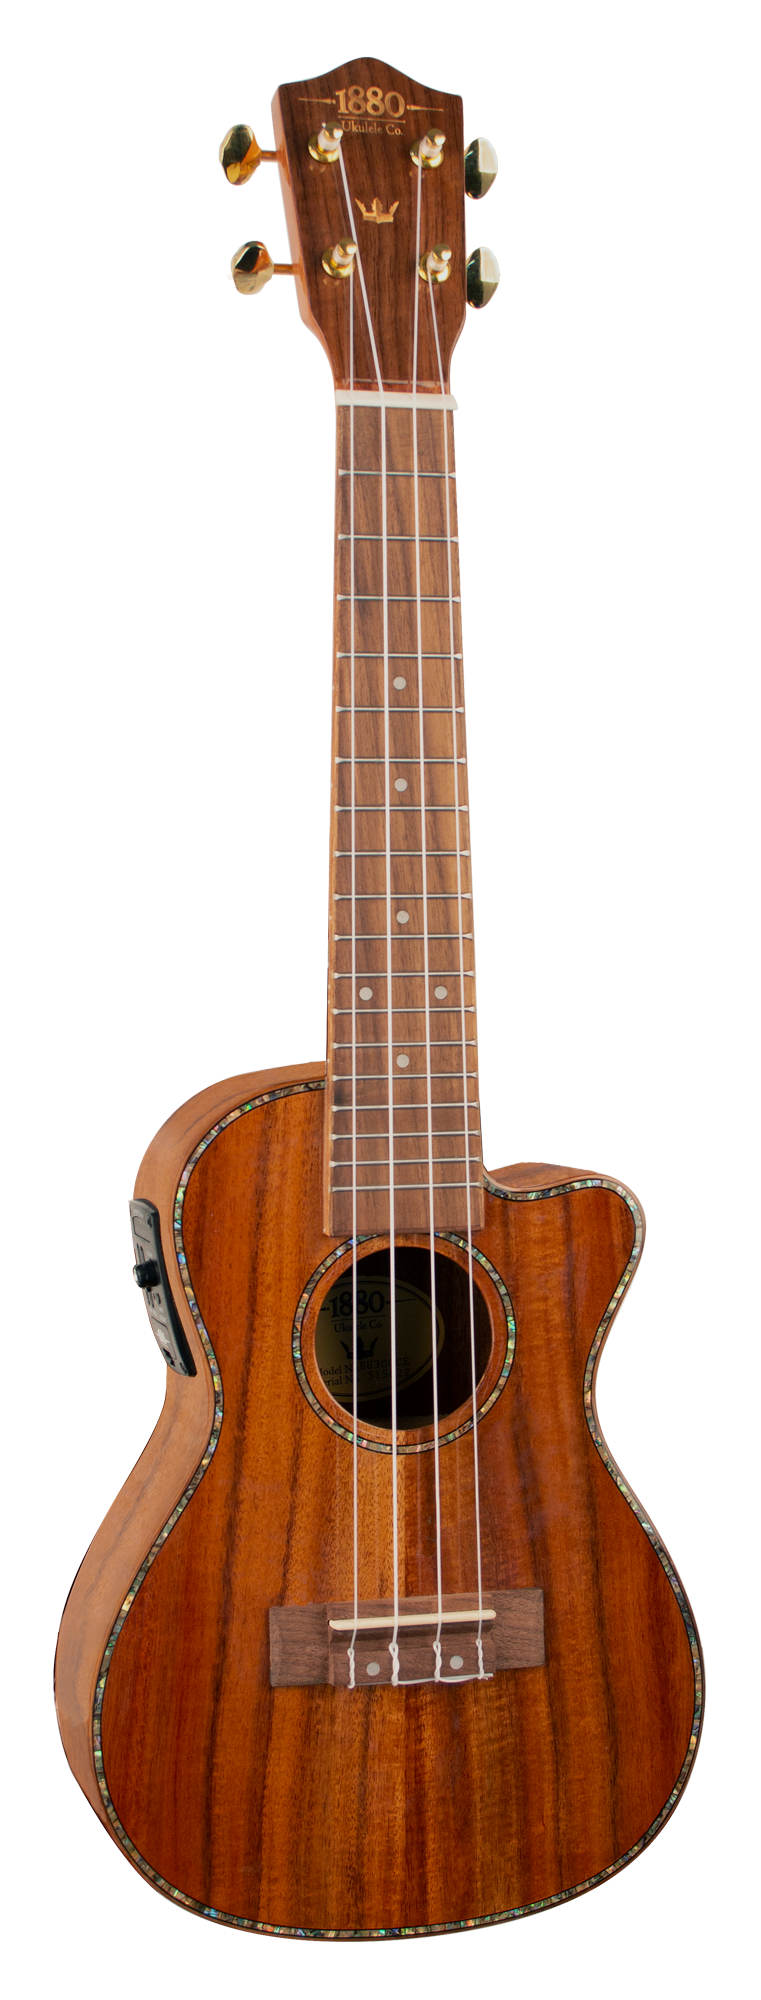 1880 UKULELE CO. 300 Series Concert Ukulele - Cutaway, Electric Acoustic